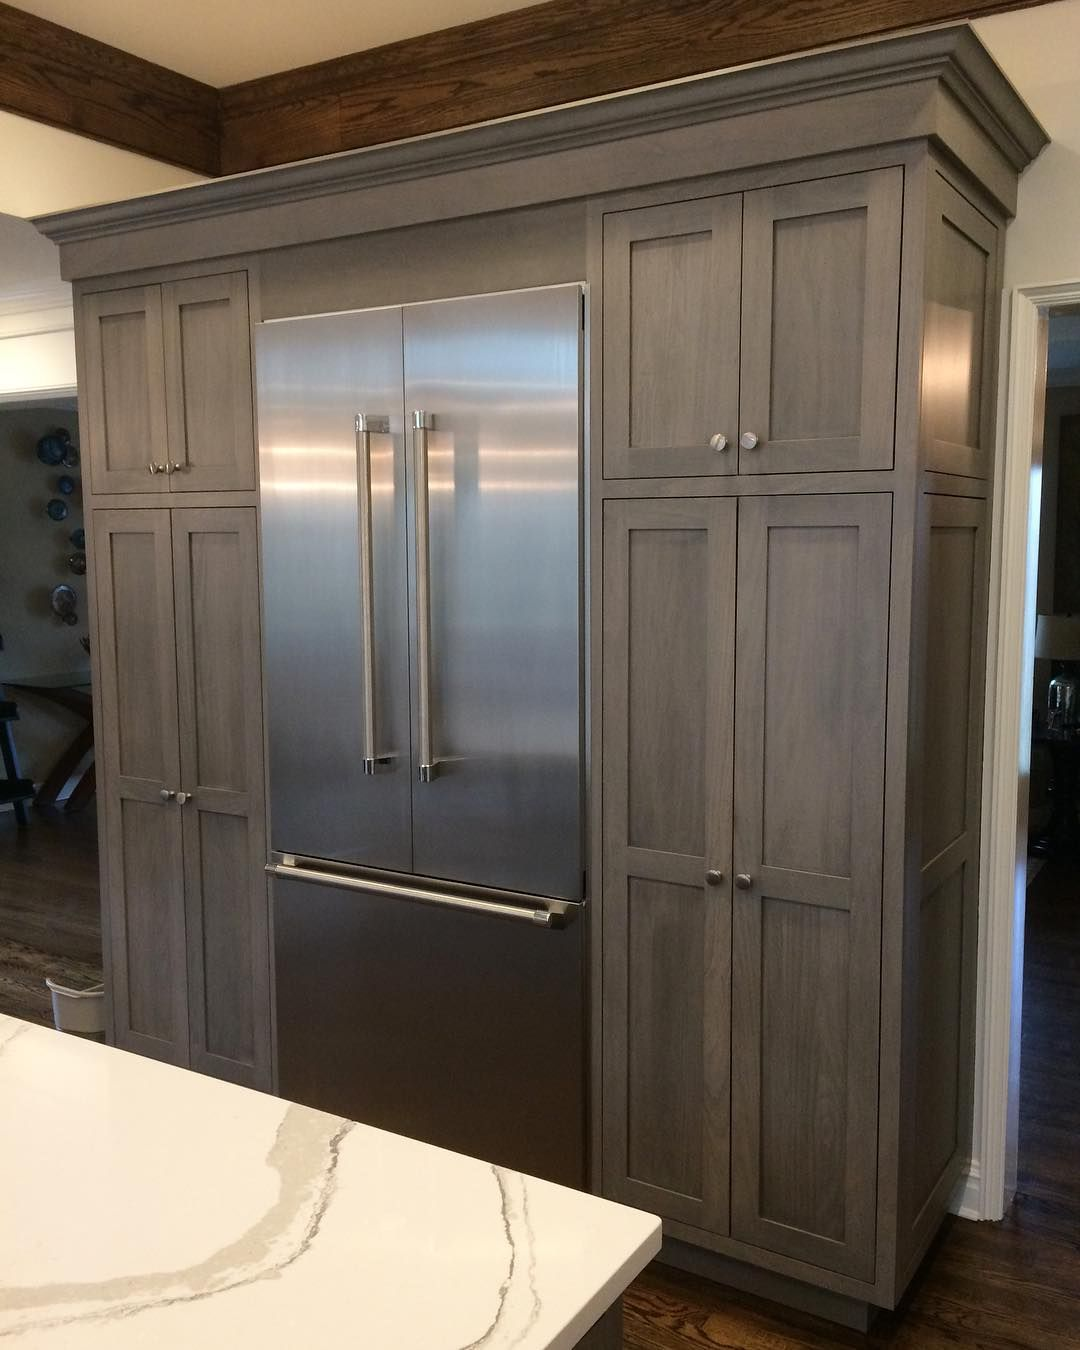 Lovely Light Grey Stained American Poplar Wood Cabinetry Kitchendesign Kitchen Kitchenre Stained Kitchen Cabinets Kitchen Design Trends Kitchen Design Color